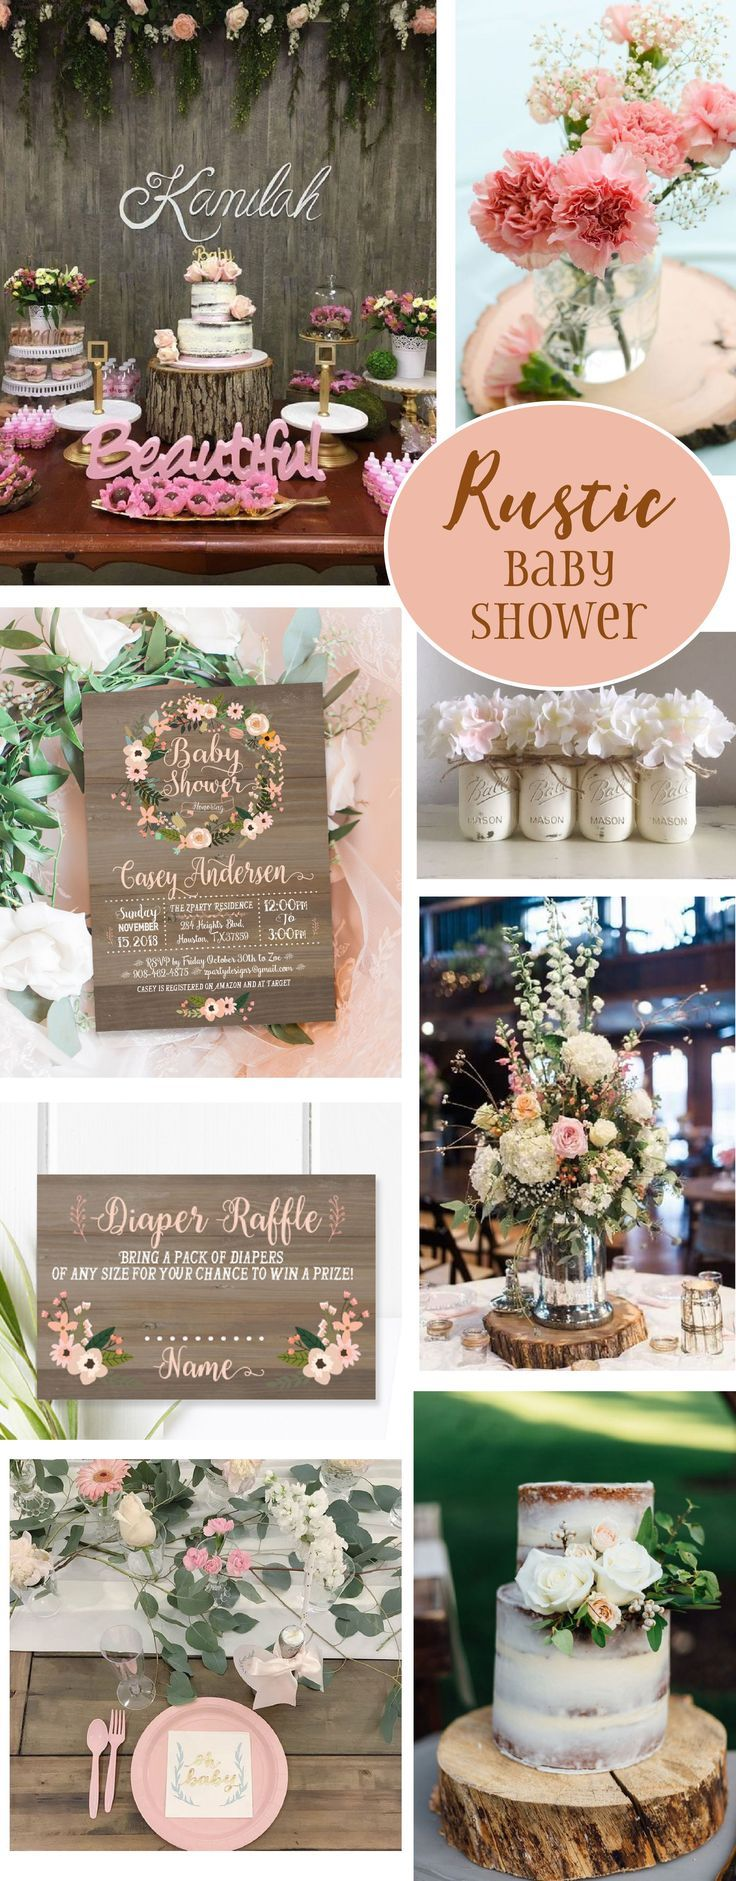 Wedding decorations reception ideas october 2018 Rustic baby shower with vintage wood coral and pink flowers and